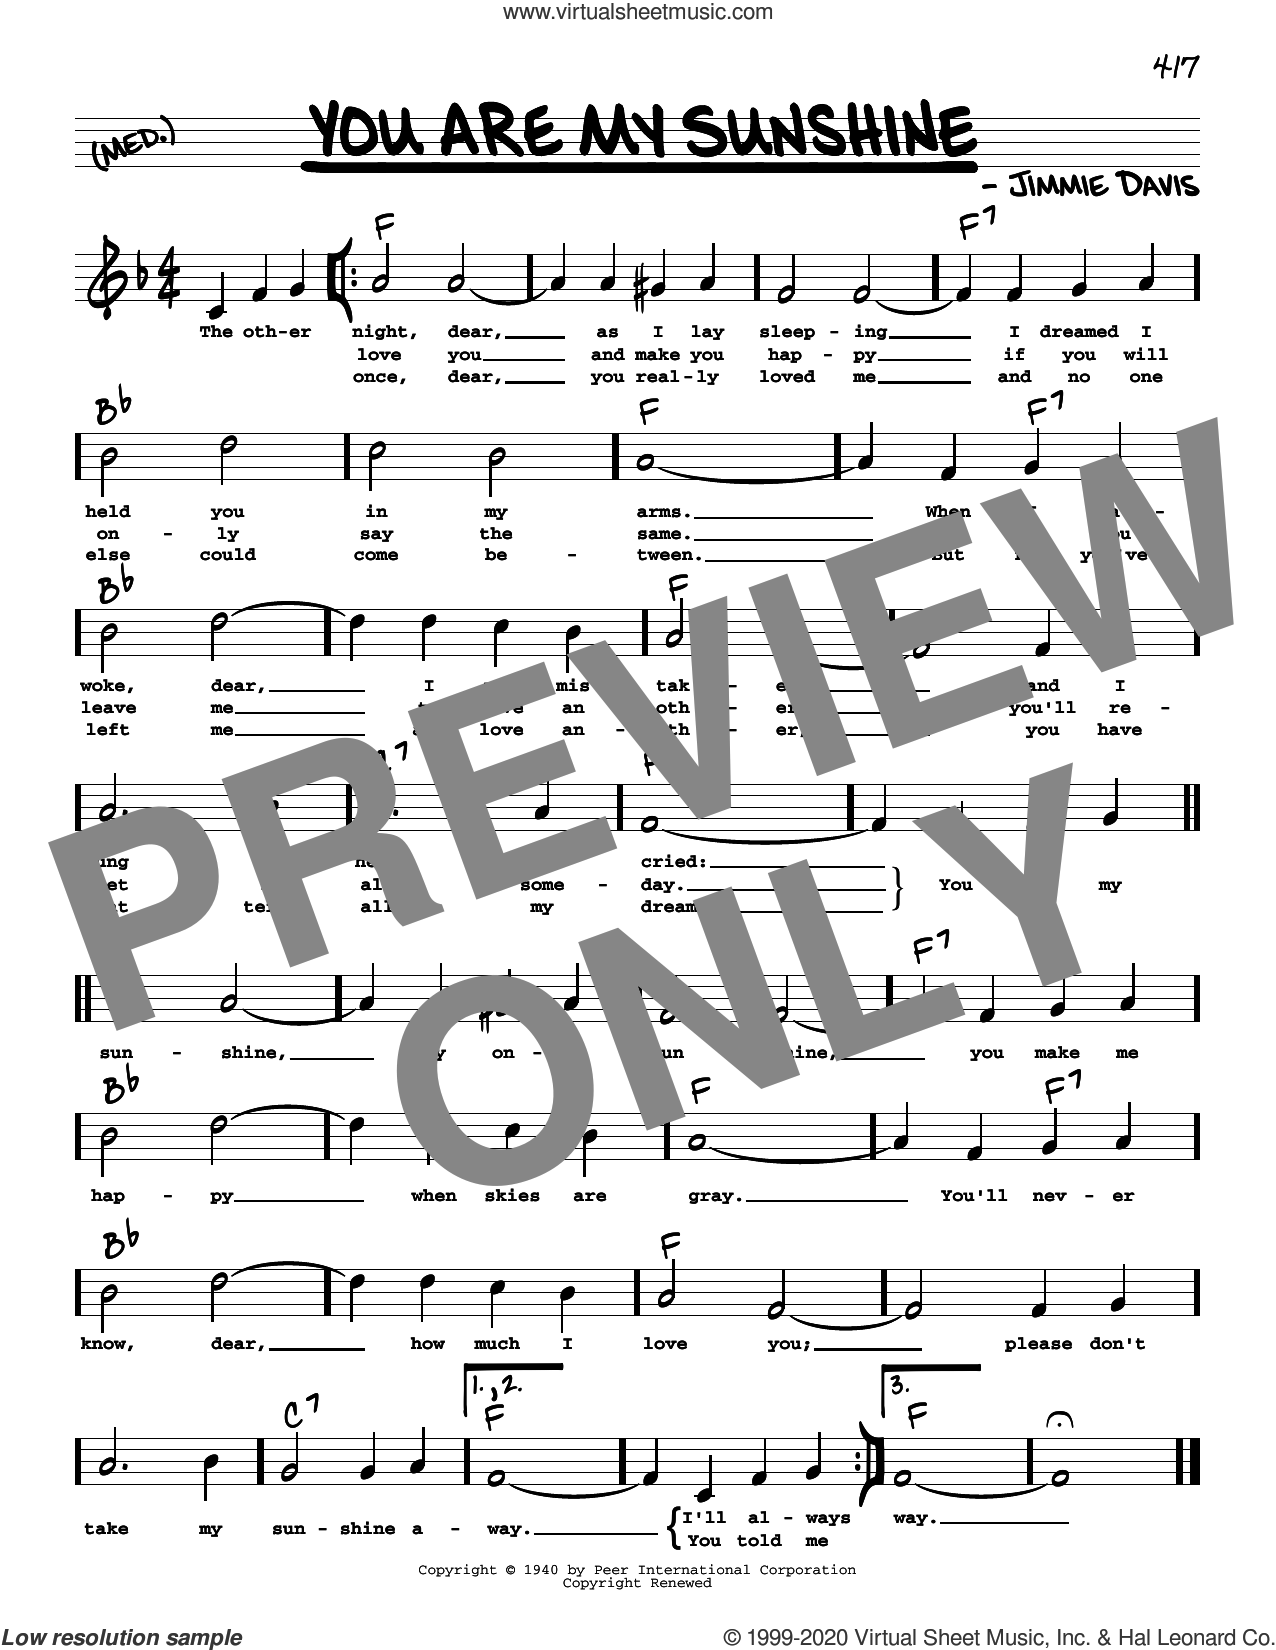 You Are My Sunshine (High Voice) sheet music for voice and other instruments (high voice) by Ray Charles, Duane Eddy and Jimmie Davis, intermediate skill level